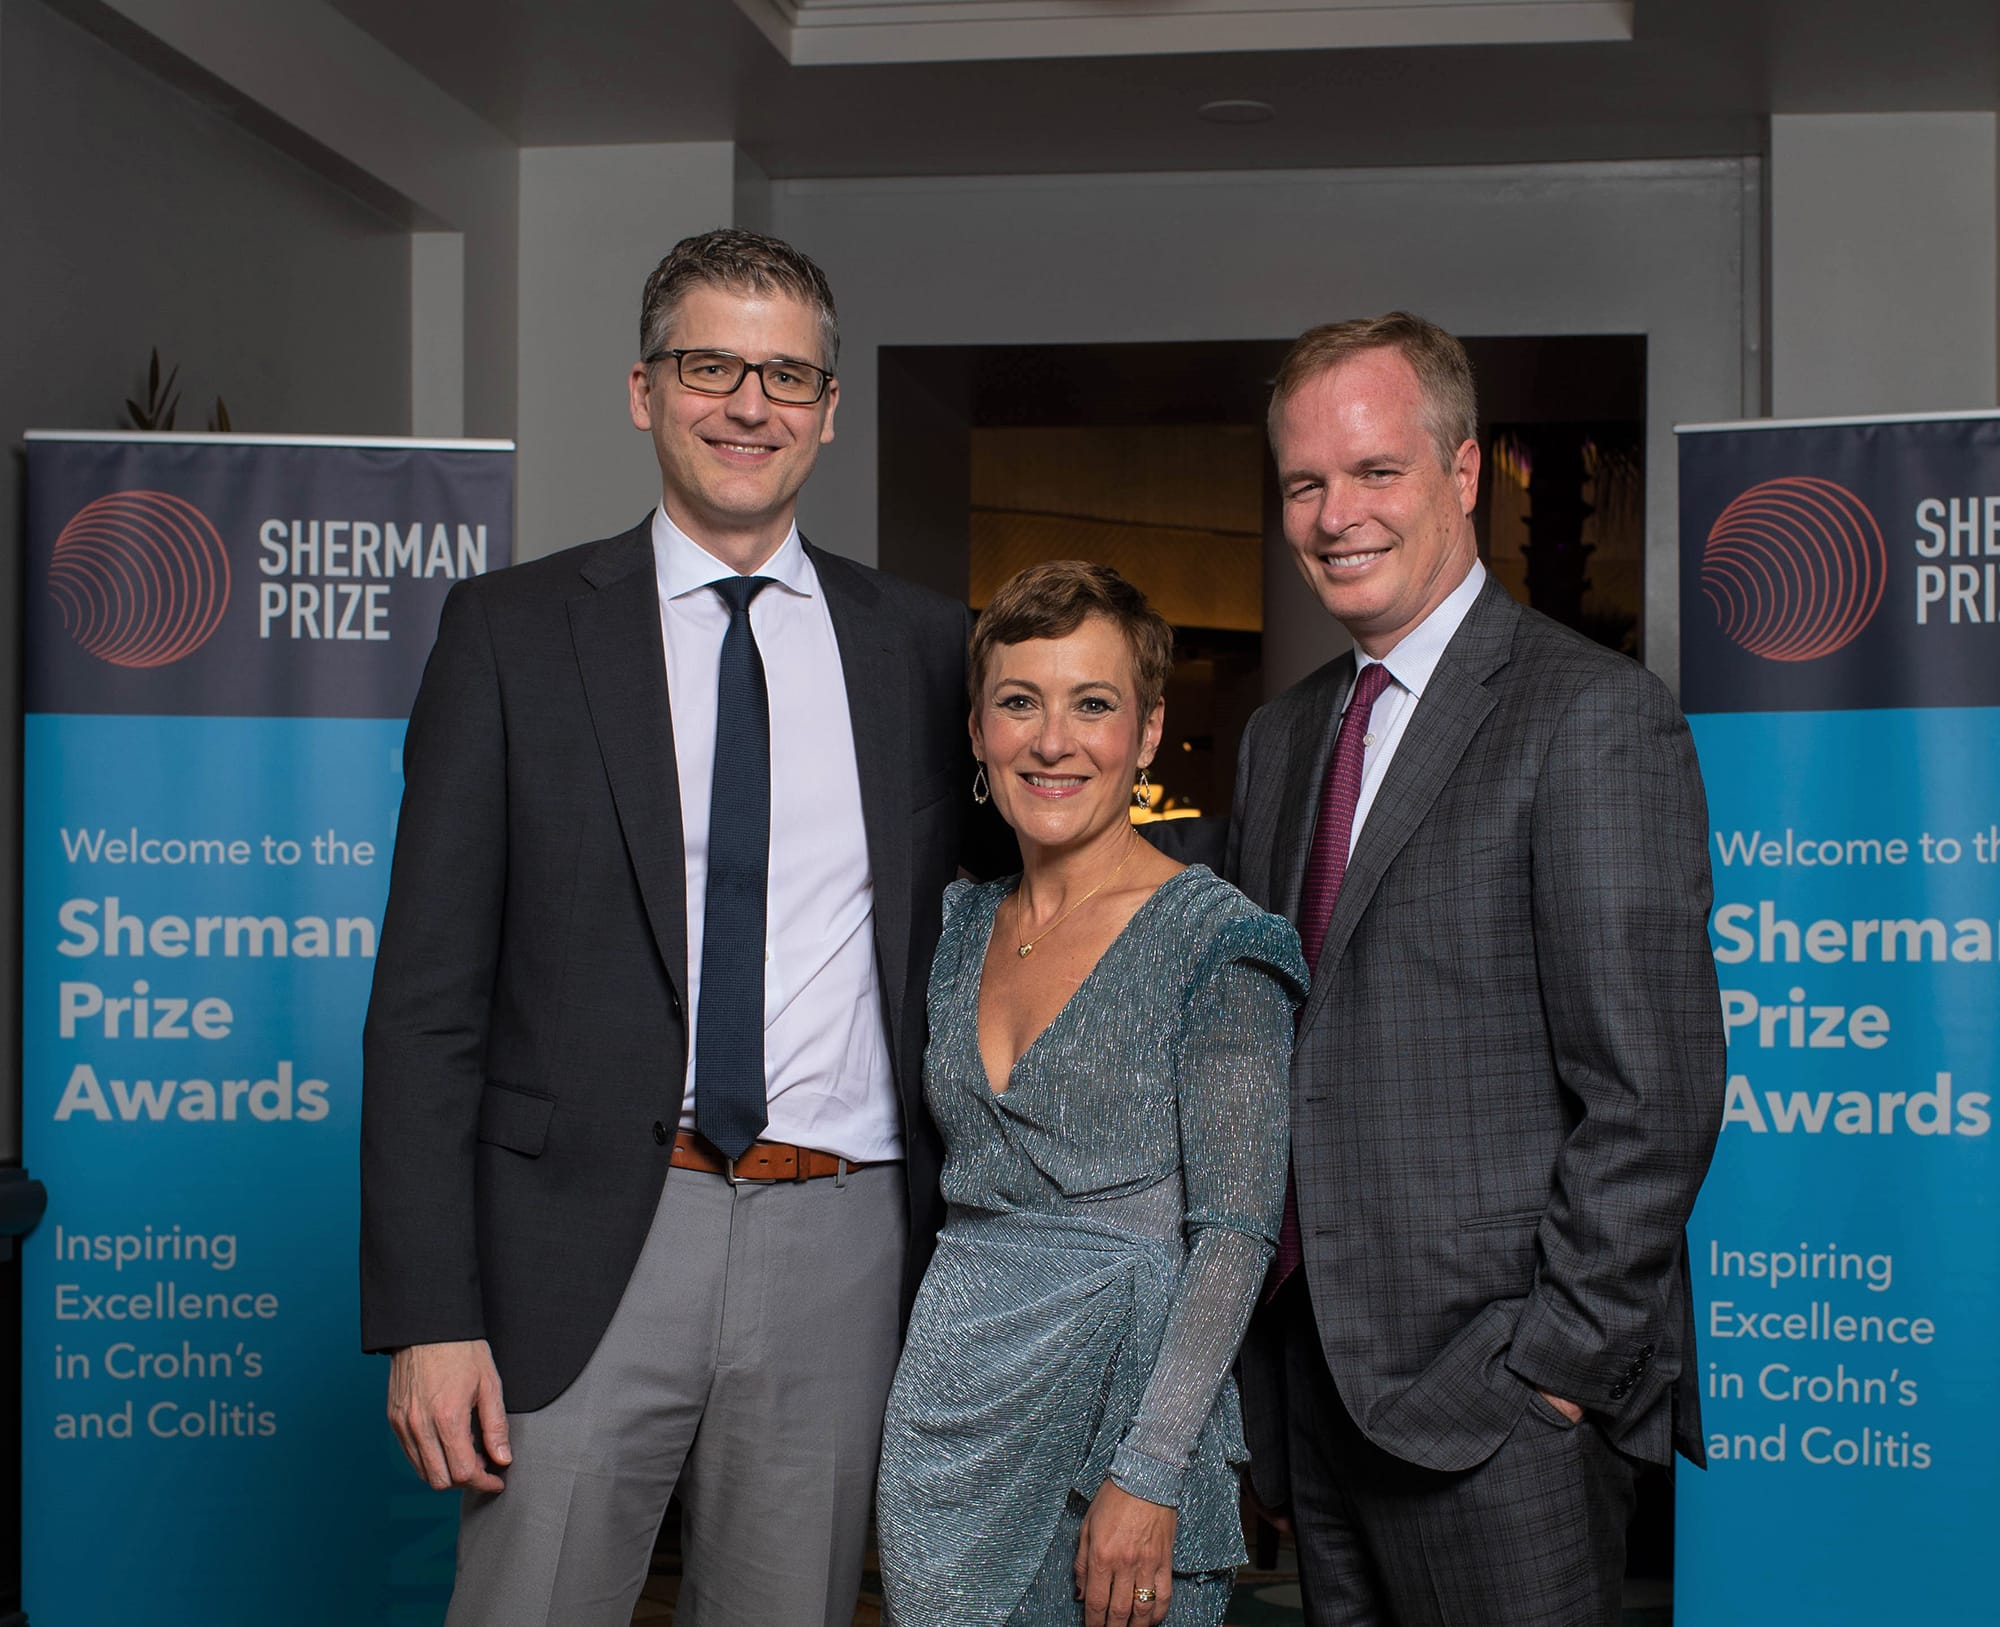 <p>2019 Sherman Prize Recipients: Dr. Florian Rieder, Dr. Maria Abreu, and Dr. William Sandborn</p>